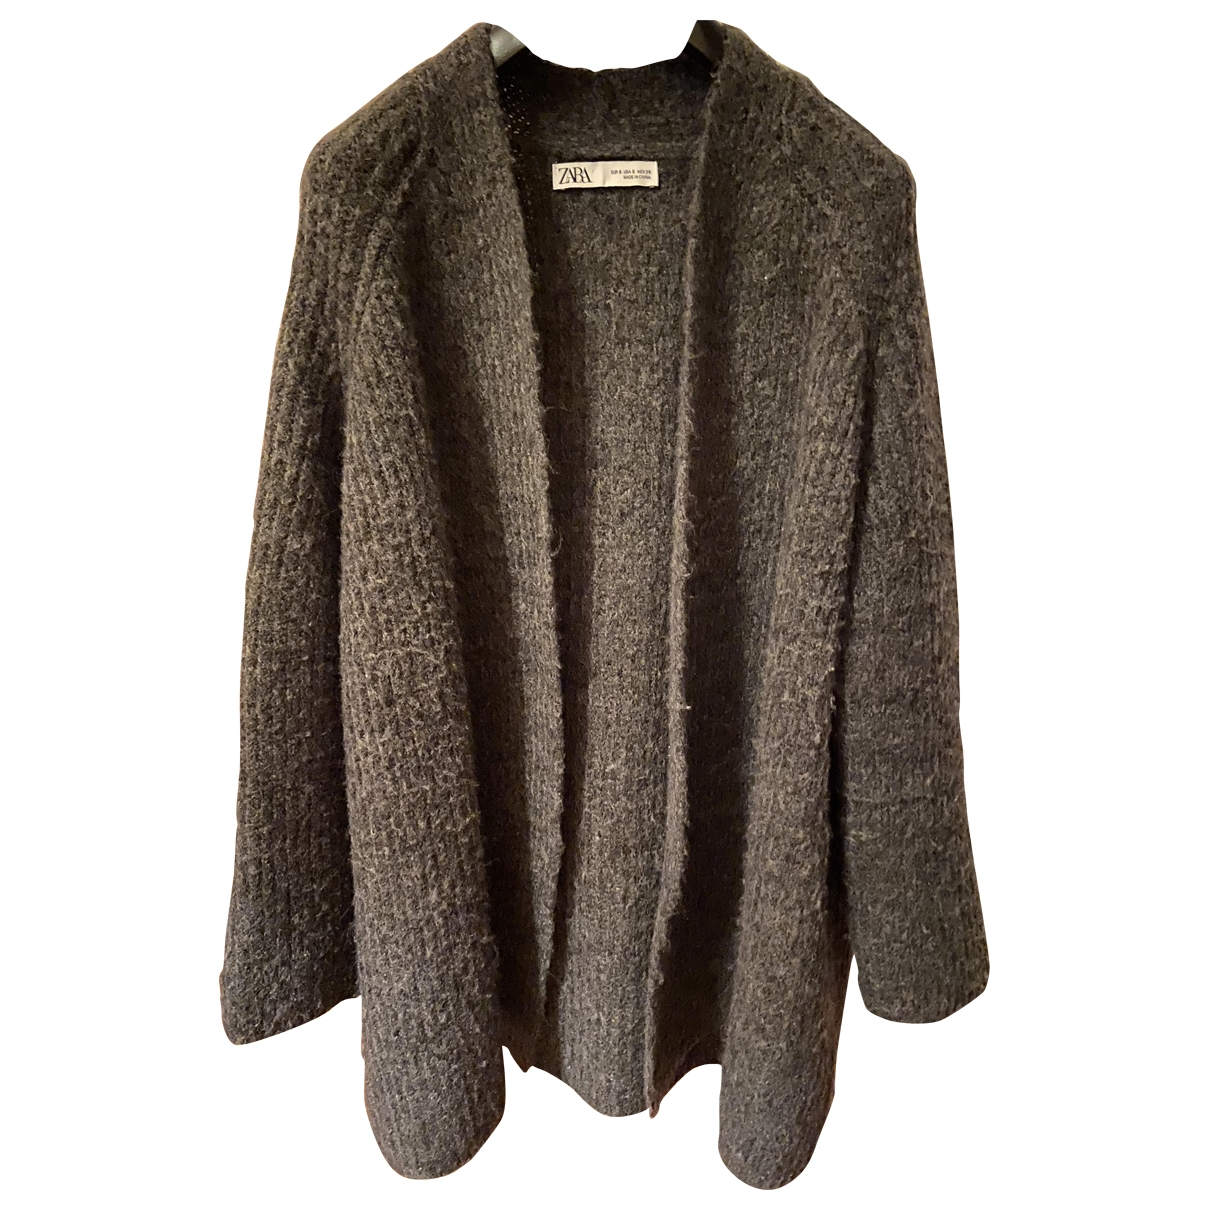 Zara \N Grey Wool Knitwear for Women S International